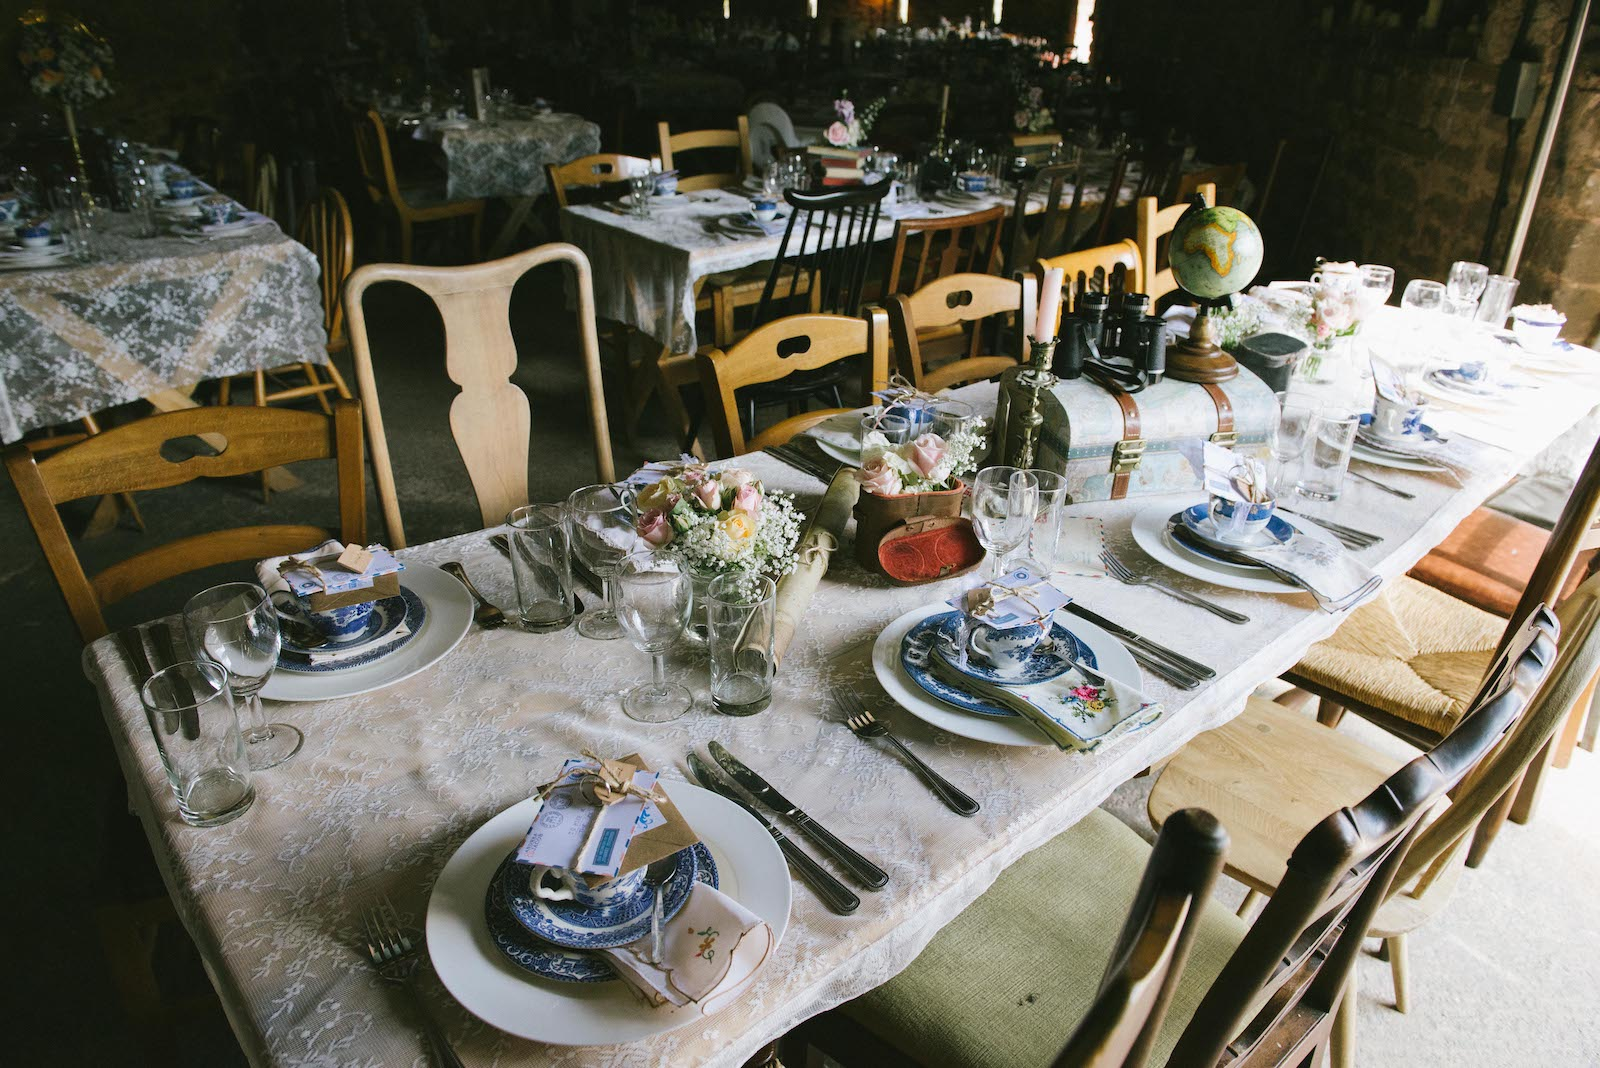 Vintage table set up at Lyde Court barn wedding venue, hereford